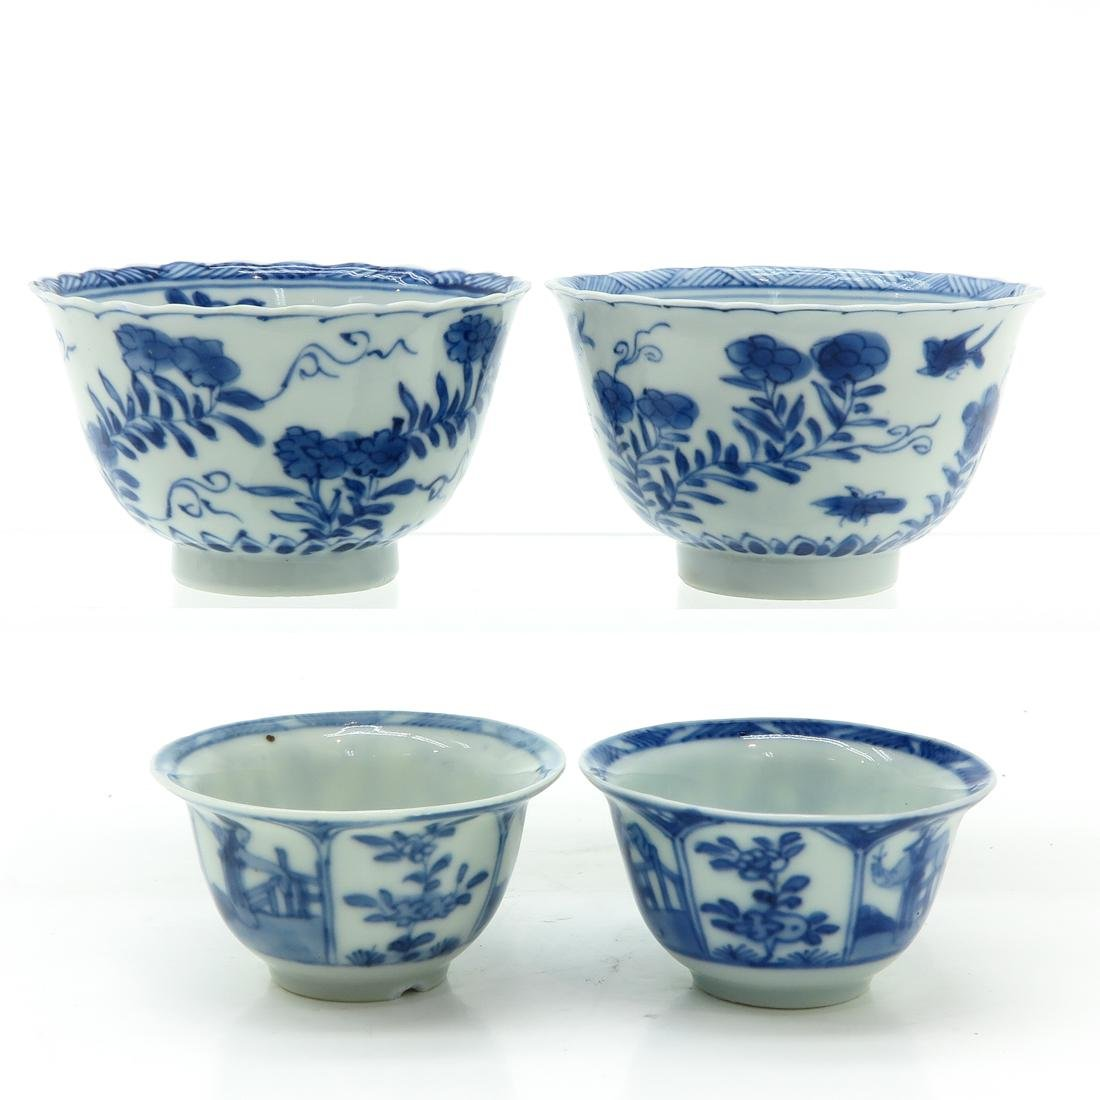 Lot of 4 Cups - 3